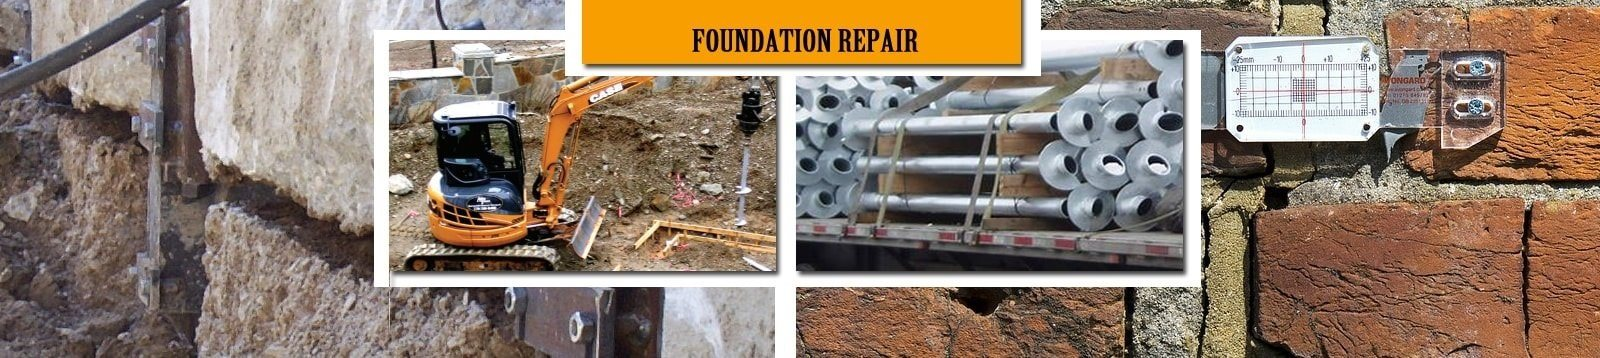 foundation repair services in Eastern Nebraska and Western Iowa